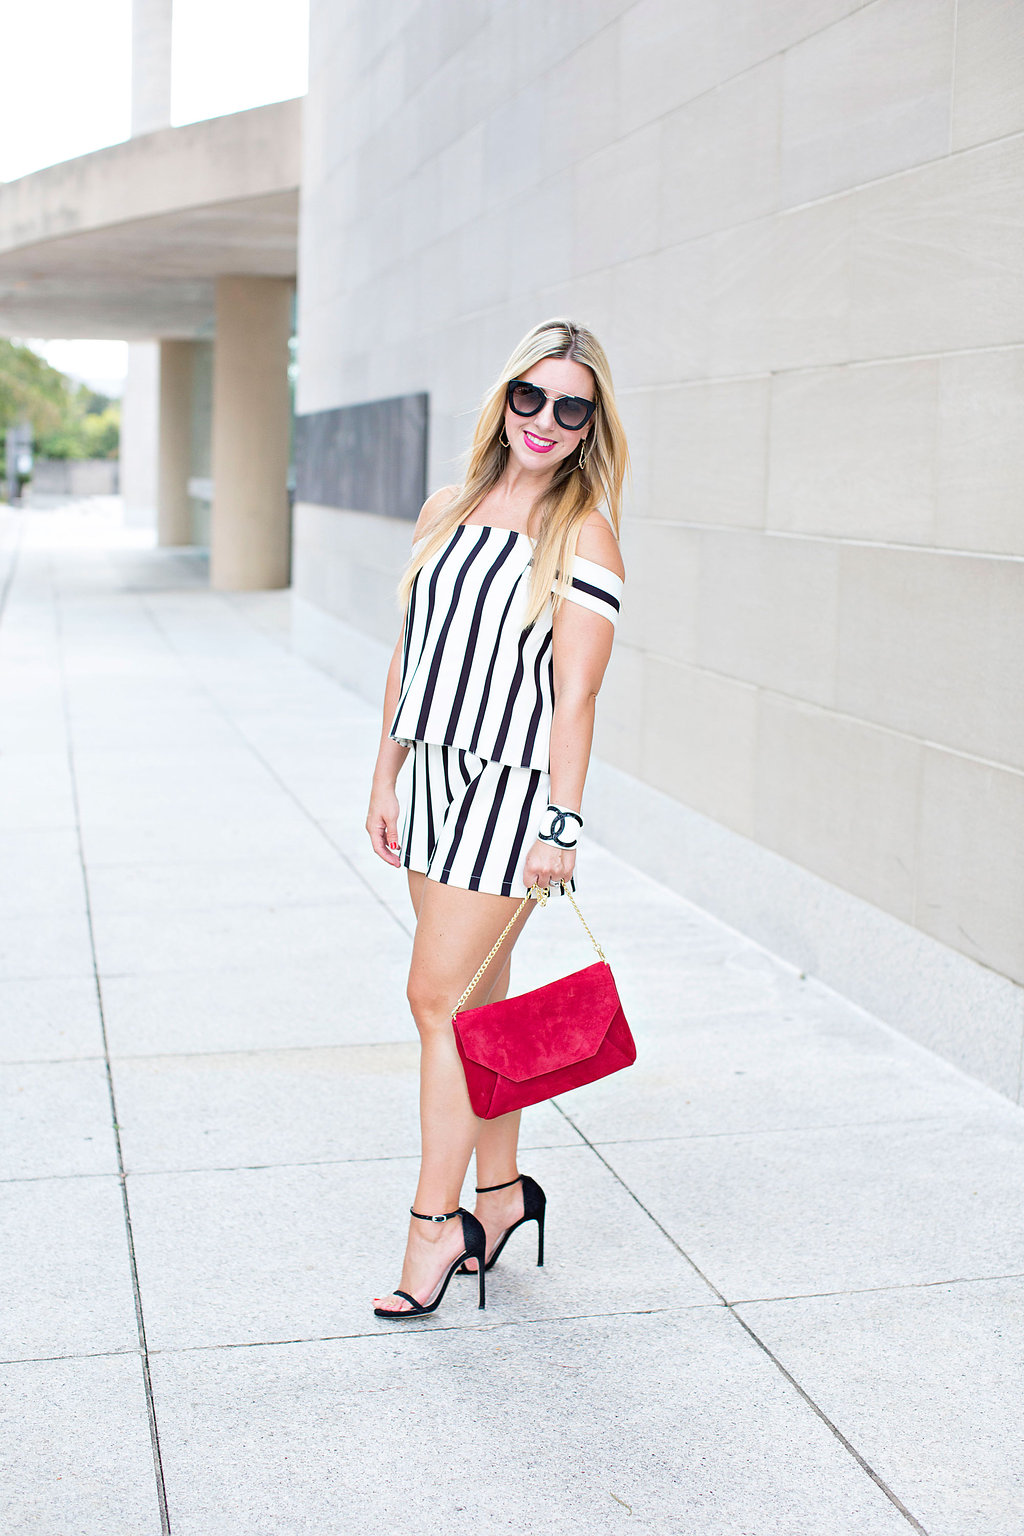 The Darling Petite Diva - Dallas Fashion Blogger- Nicole Kirk